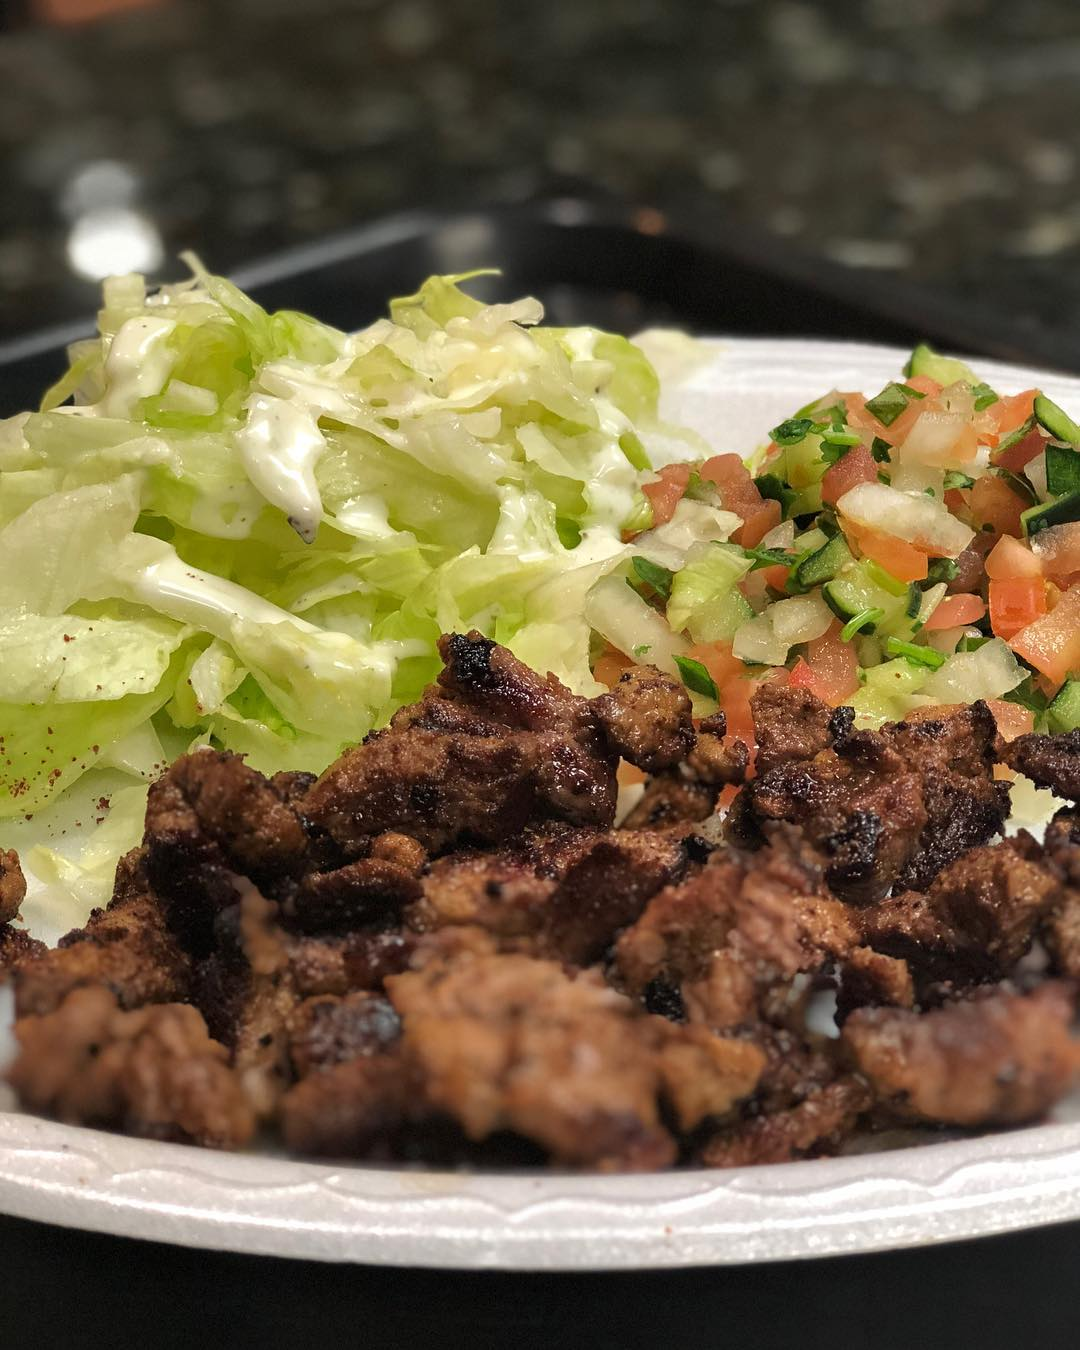 Since I'm out running around and working all day, stopping at a Greek place was a good way to stay on diet… I got extra salad instead of rice and won't be indulging in the tomatoes… the lamb is amazing and the tzatziki sauce is so yummy with it